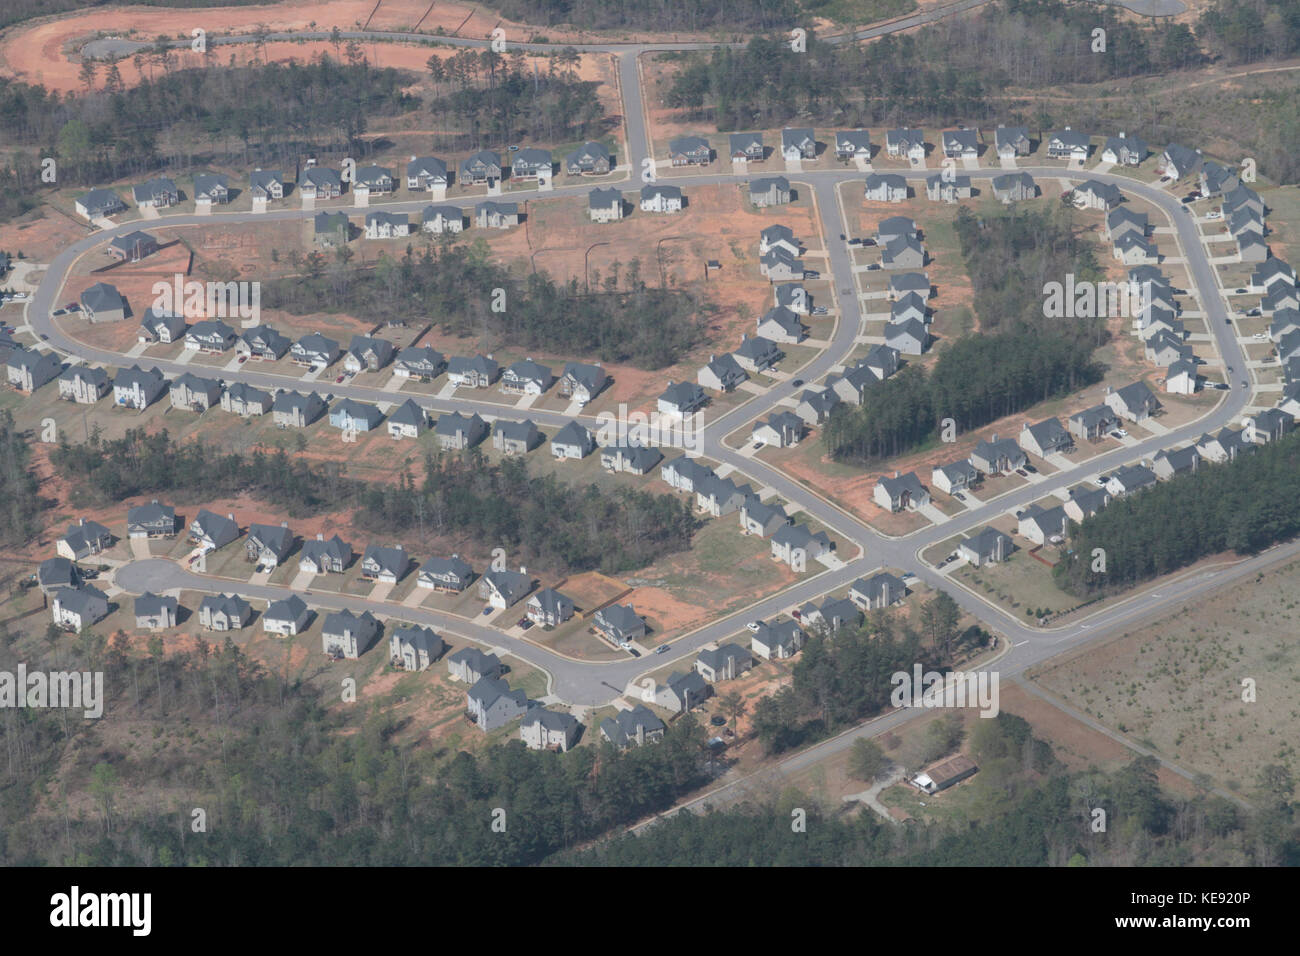 Aerial photo of suburban development south of Atlanta, Georgia, USA - Stock Image